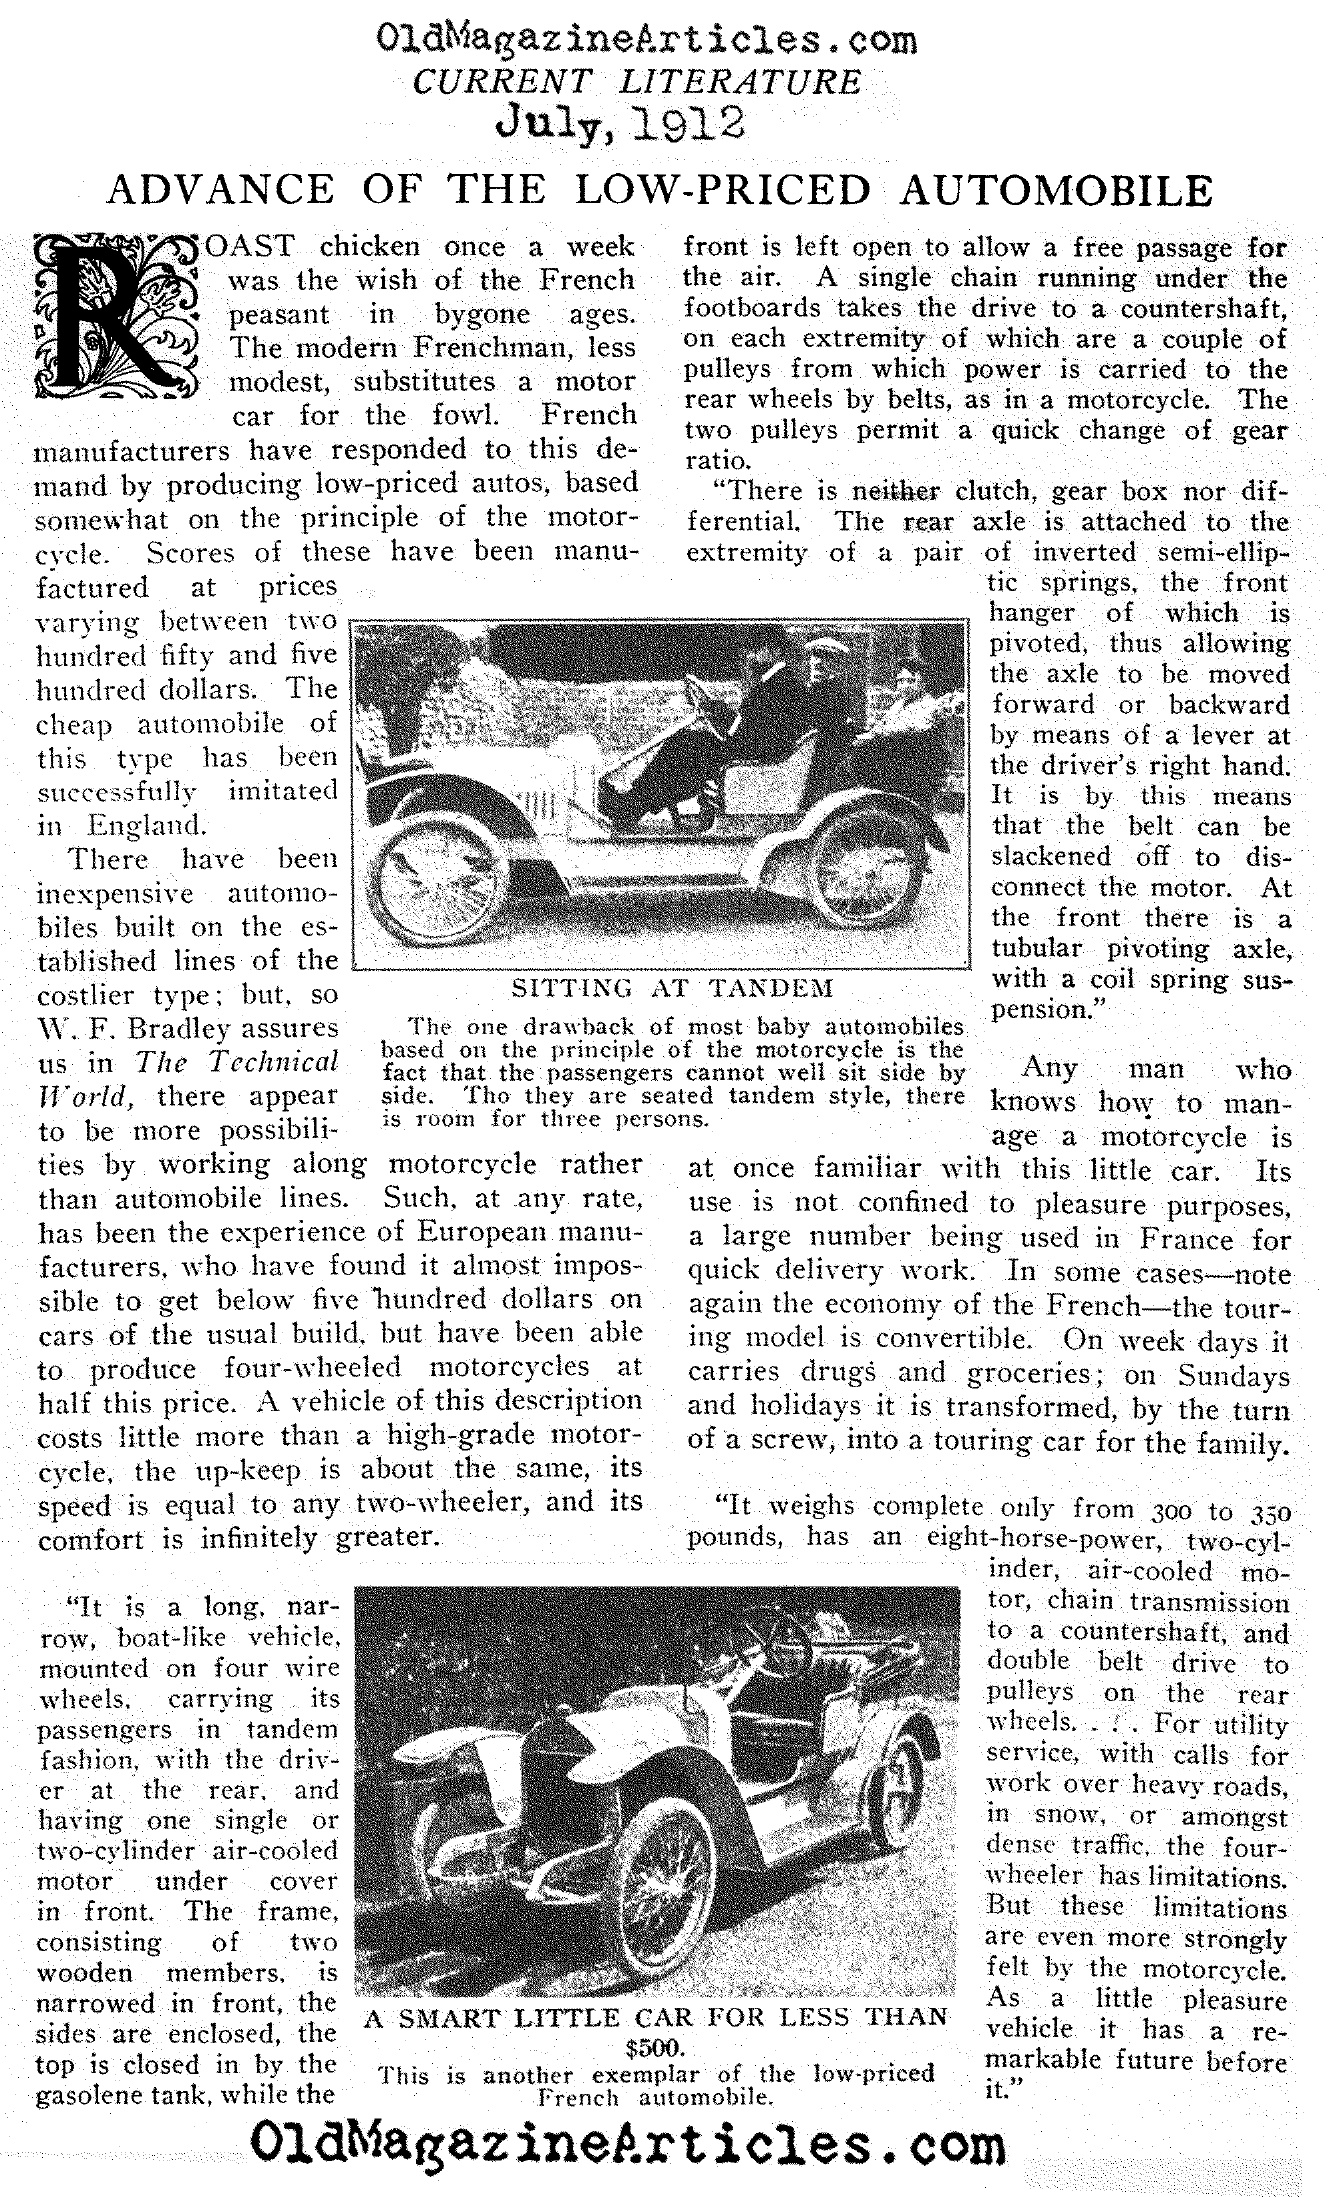 Advance of the Low-Priced Automobile (Current Literature, 1912)